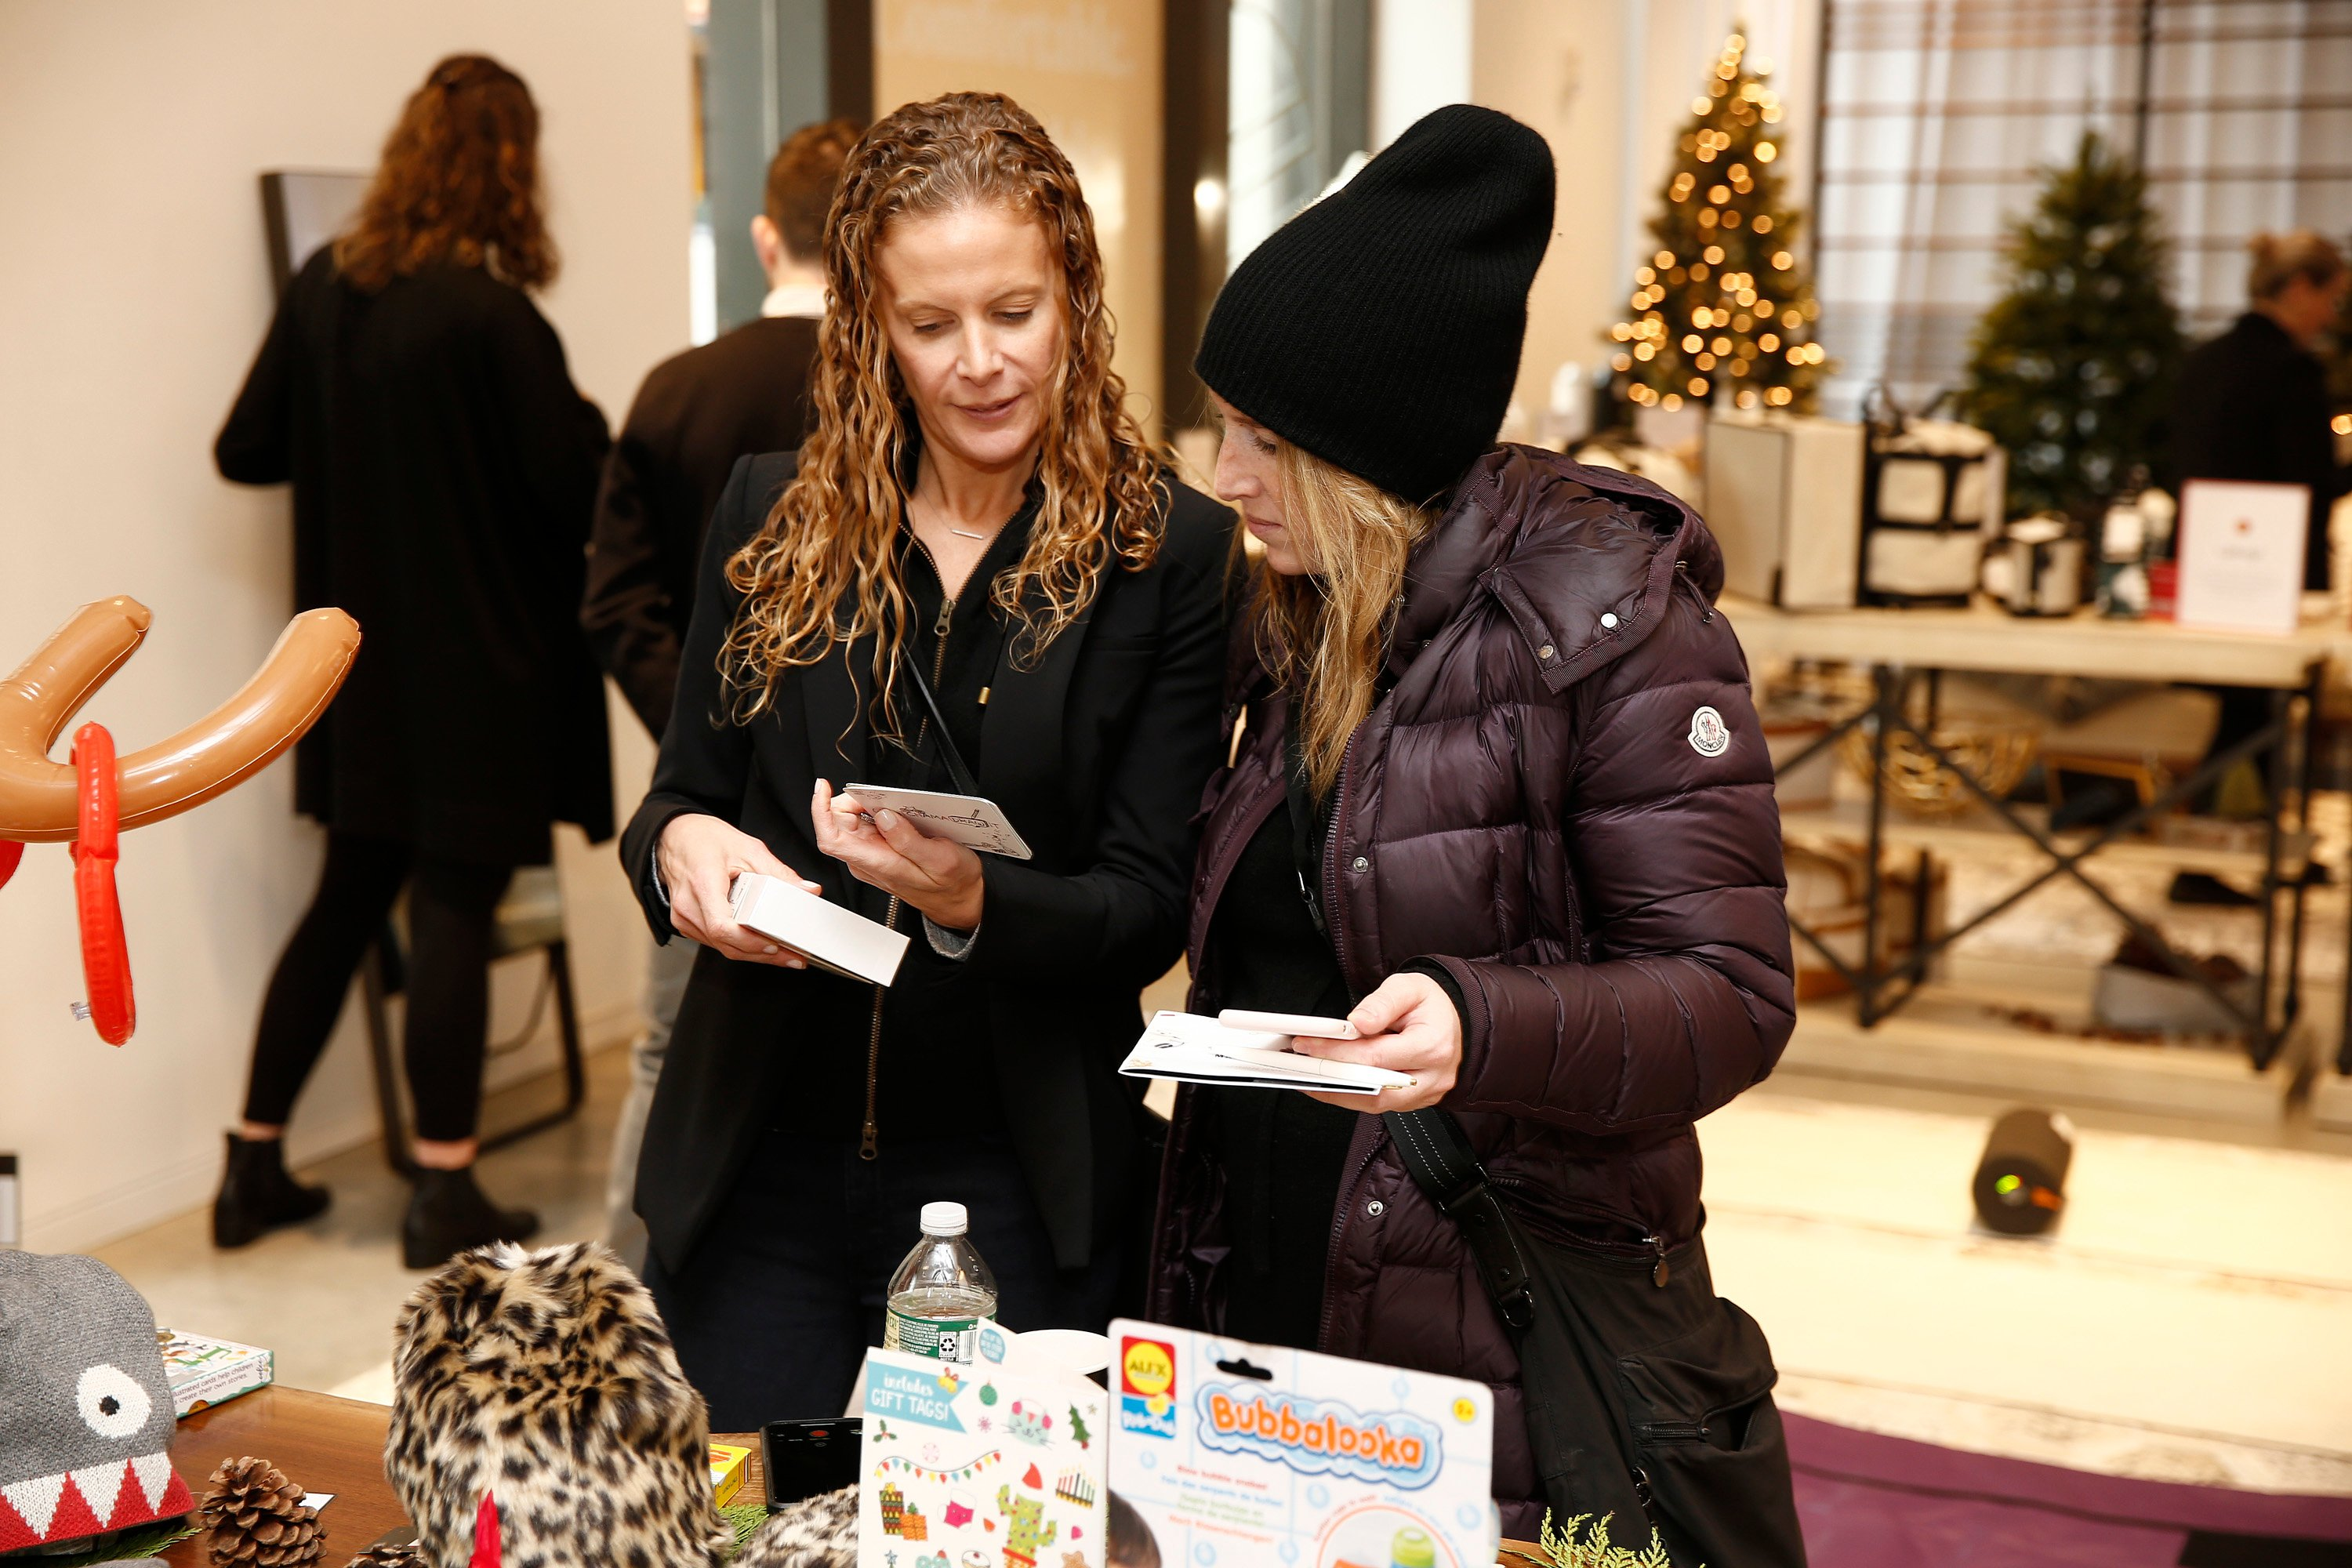 A view of guests shopping the Jetblack Holiday Marketplace Event at Cadillac House on November 13, 2018 in New York City. Brian Ach/Getty Images for Jetblack